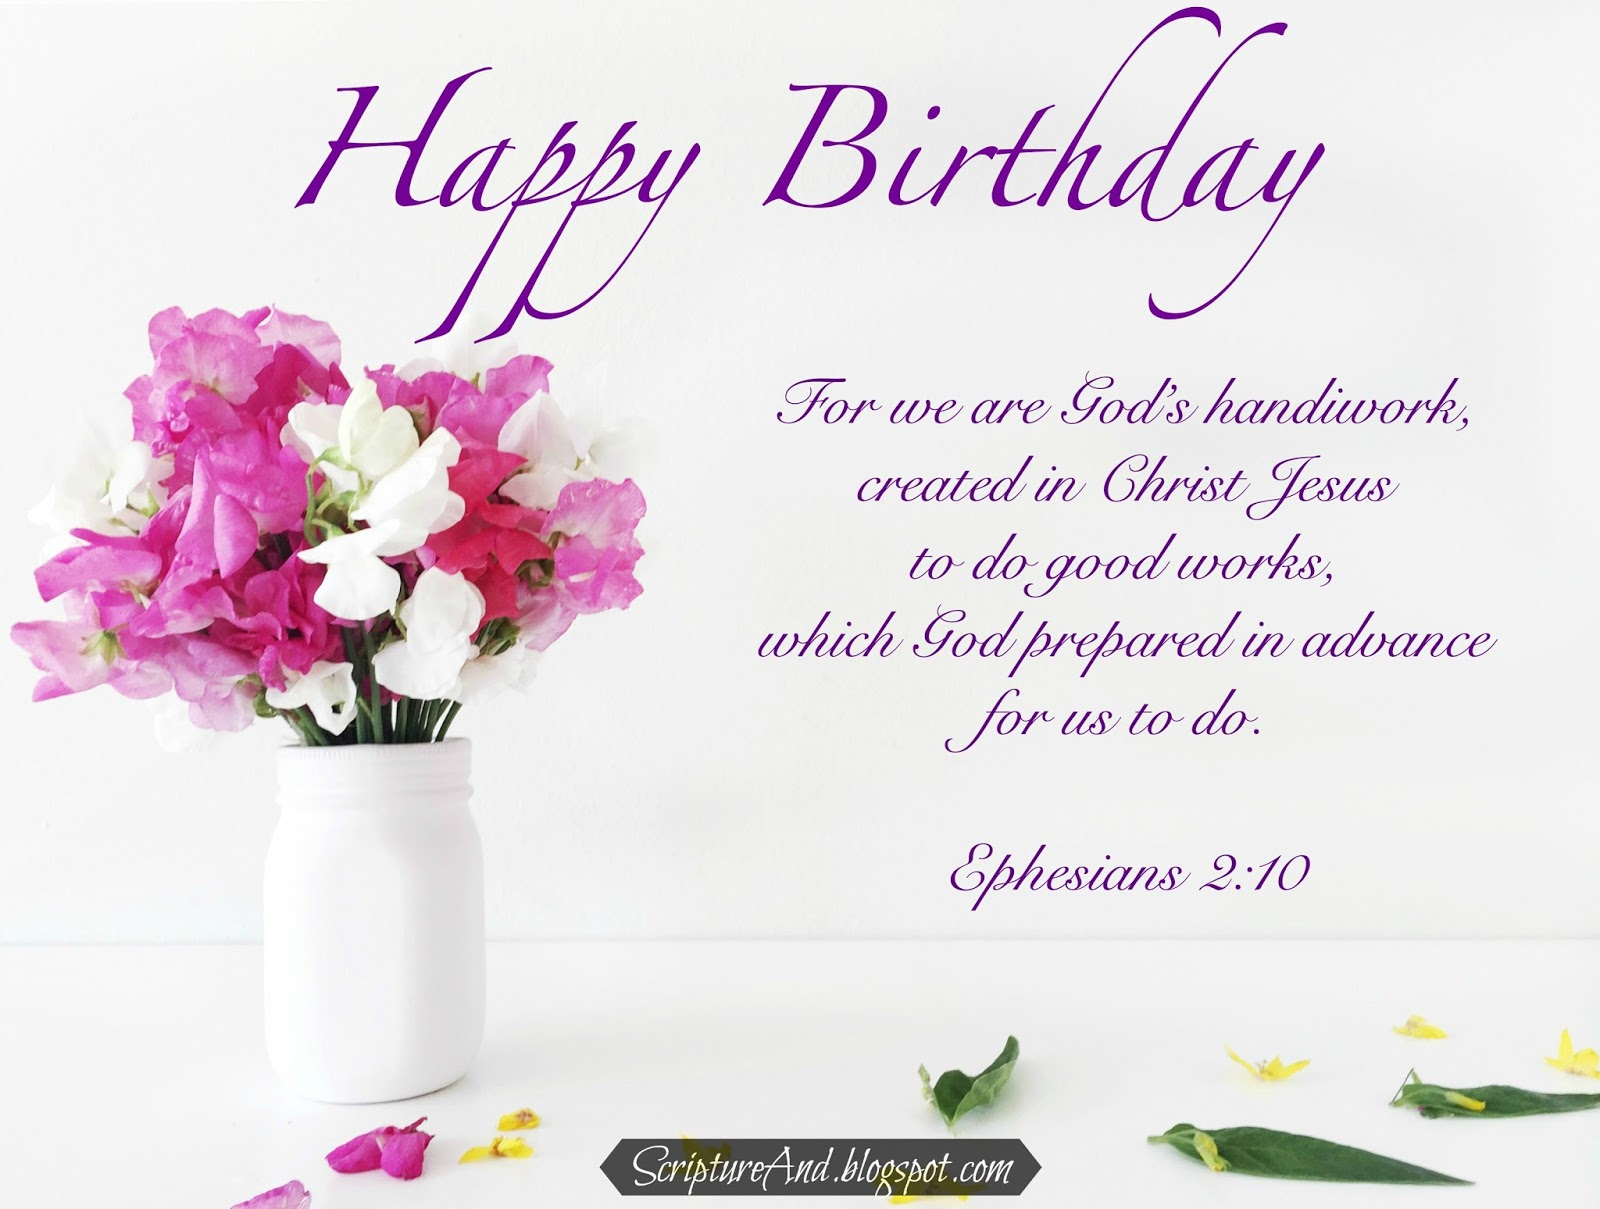 Happy Birthday With Flowers In A Vase And Ephesians 210 From ScriptureAndblogspot